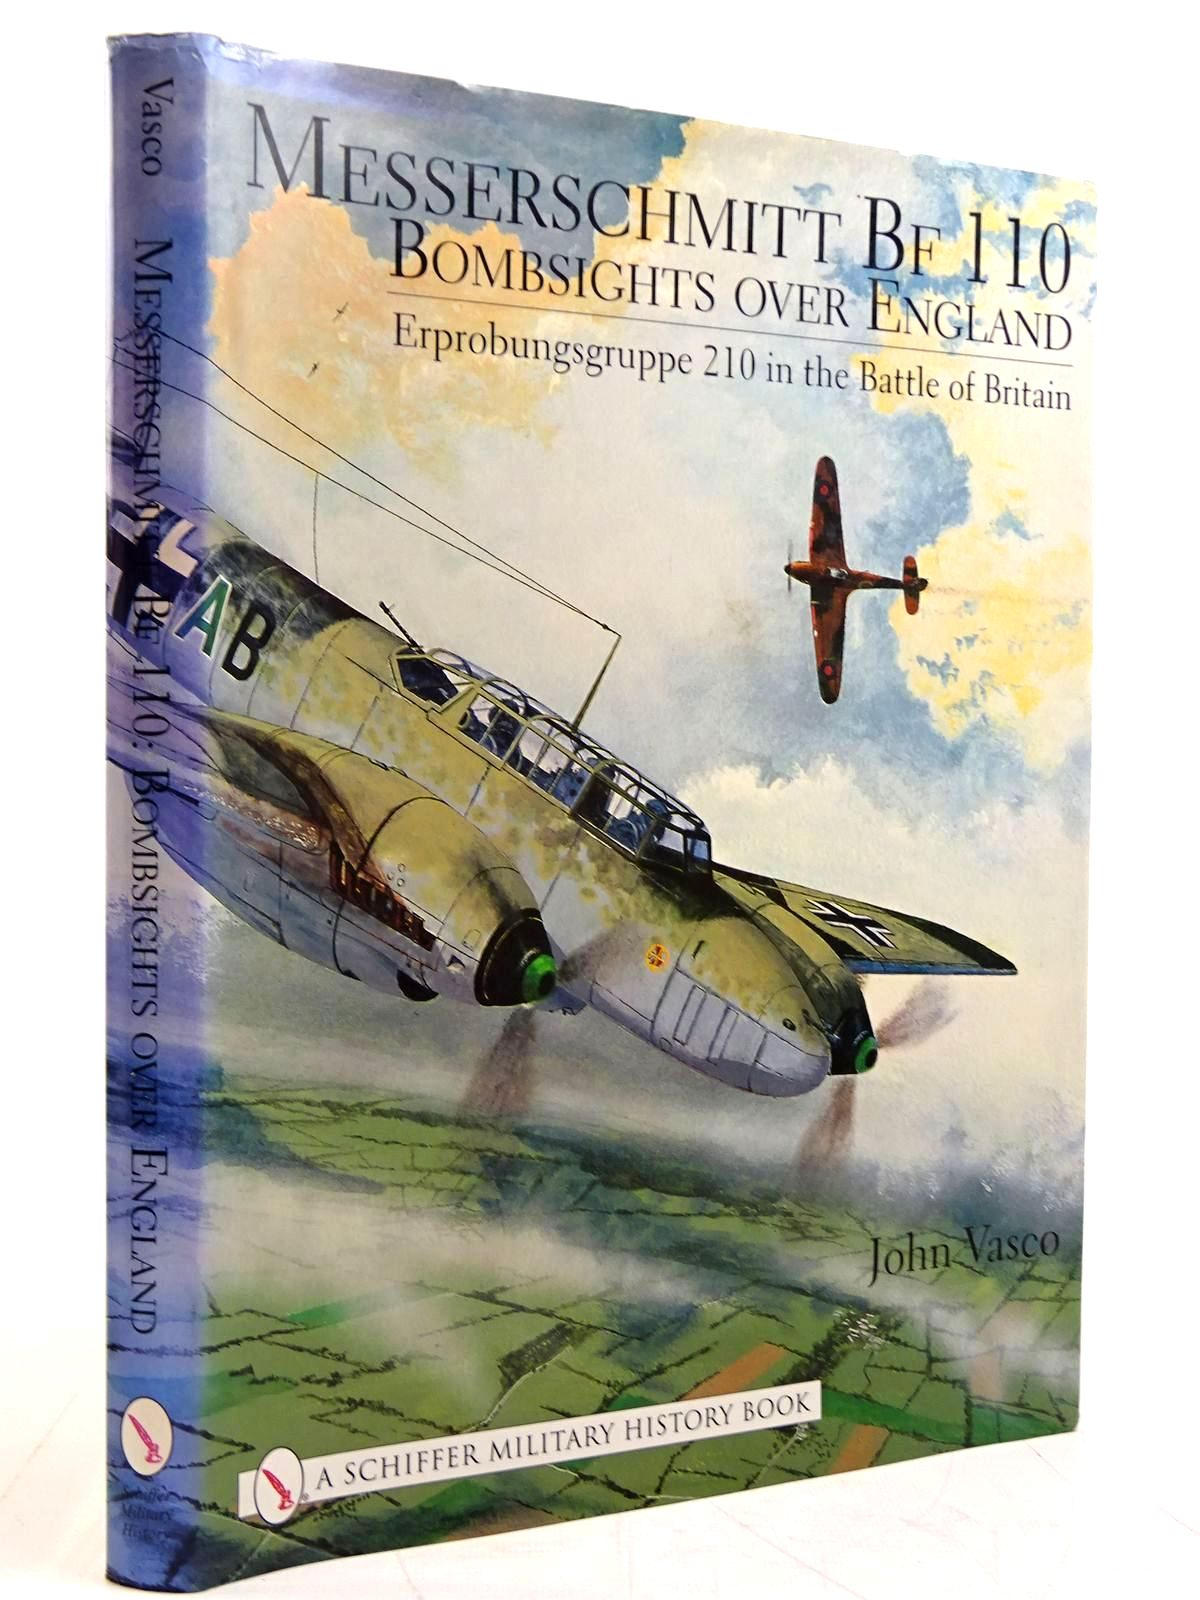 Photo of MESSERSCHMITT BF 110 BOMBSIGHTS OVER ENGLAND: ERPROBUNGSGRUPPE 210 IN THE BATTLE OF BRITAIN written by Vasco, John published by Schiffer Military History (STOCK CODE: 2131449)  for sale by Stella & Rose's Books